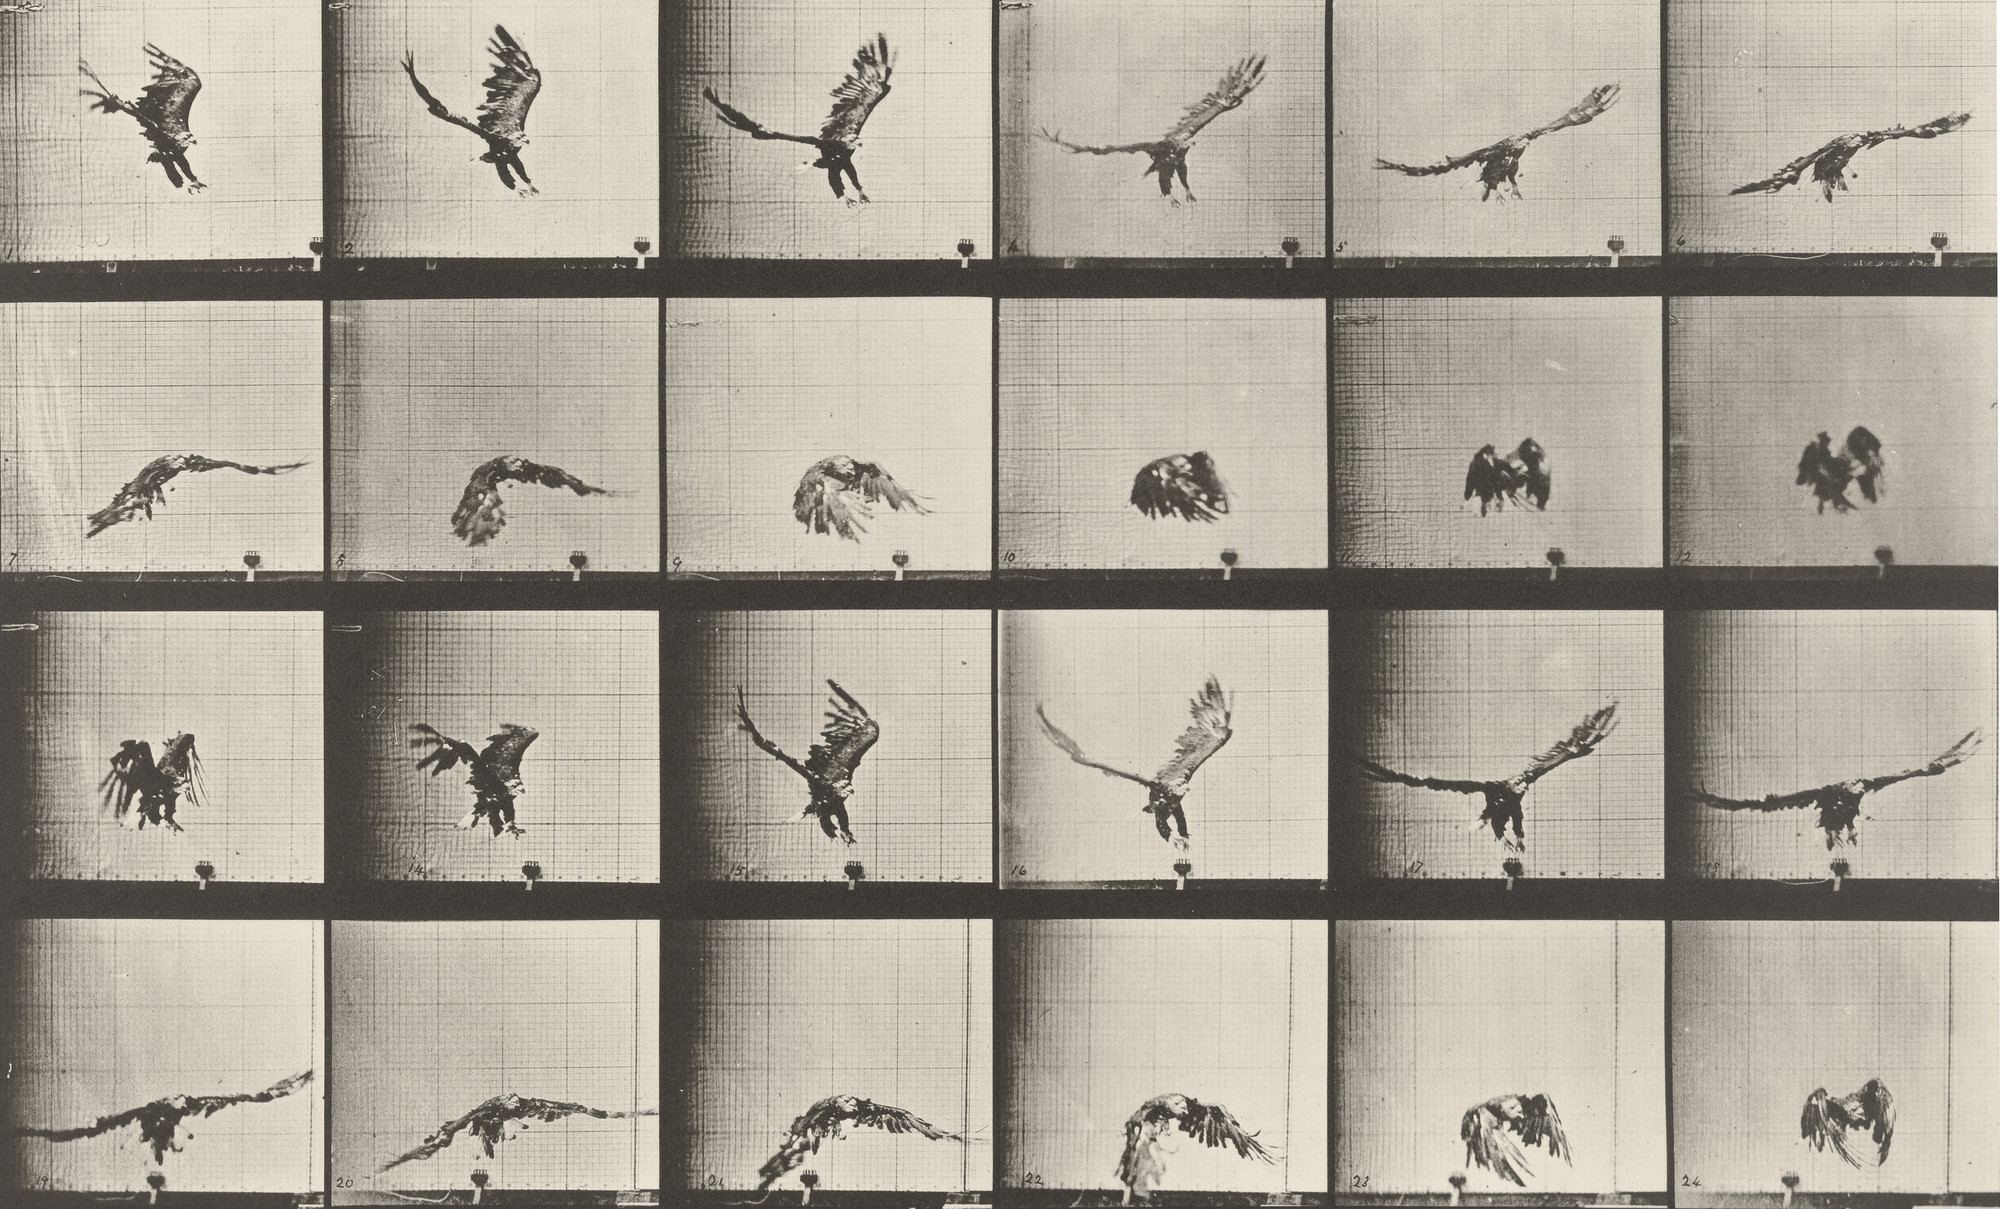 Eadweard J. Muybridge. American Eagle Flying Near the Ground: Plate 771 from Animal Locomotion (1887). 1884-86